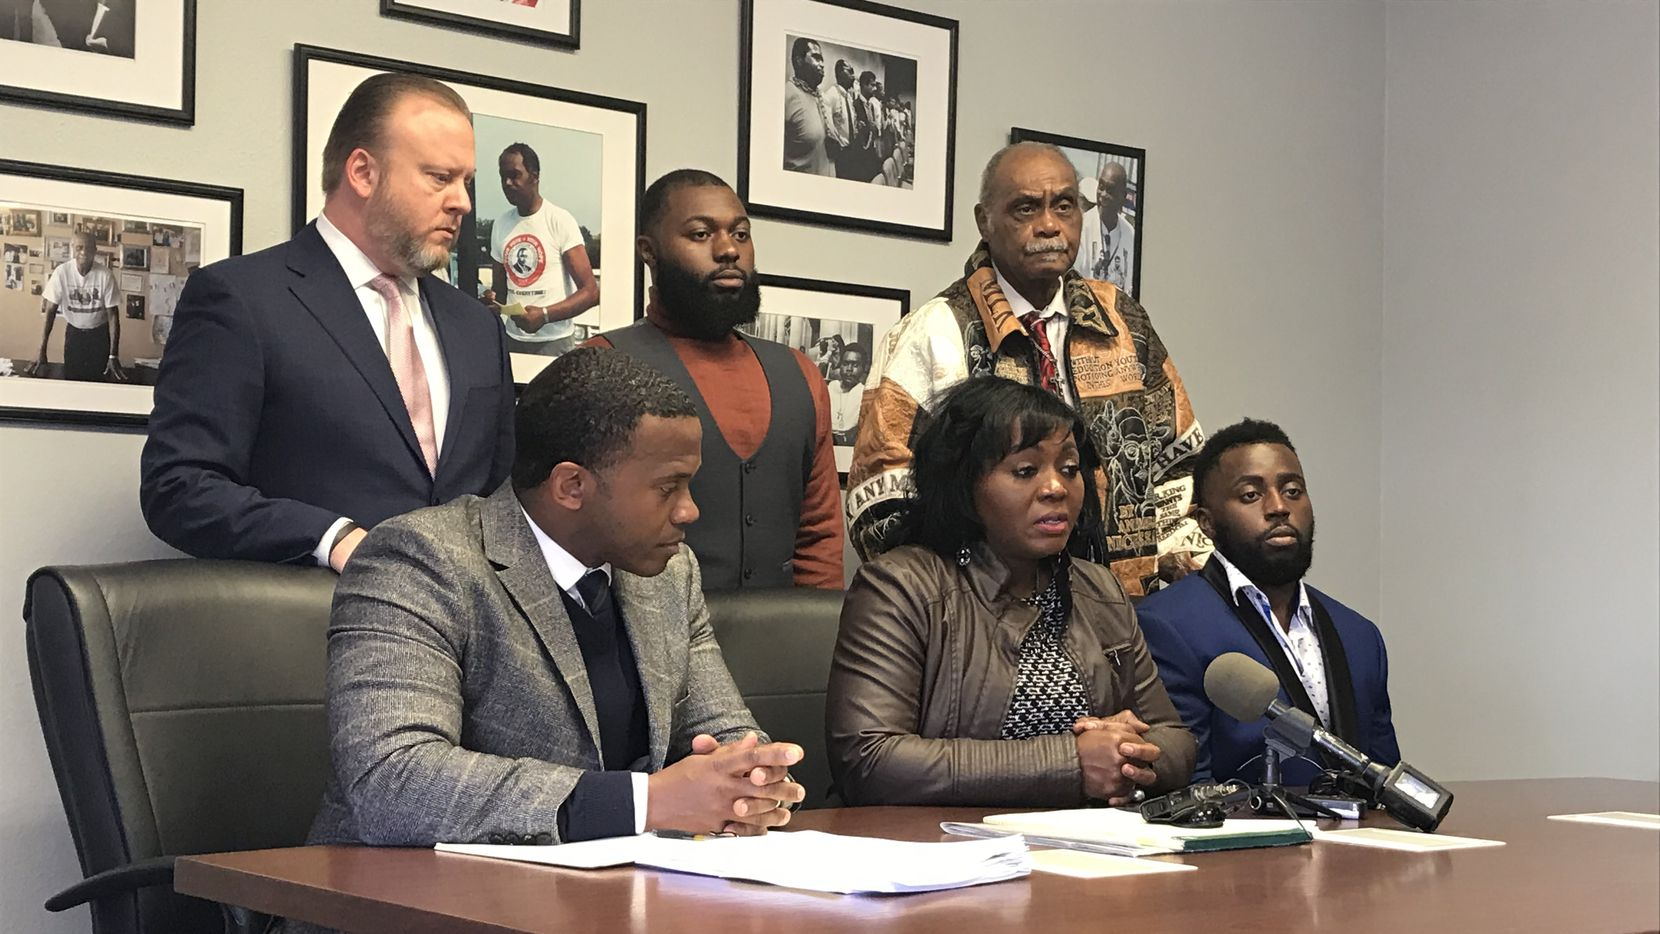 In a press conference to announce her filing of a federal civil rights lawsuit, Sammie Anderson, middle, describes the night DeSoto police officers roughed up her family in August 2018 after she called 911 for help. She and her lawyers said Dallas County District Attorney John Creuzot's decision not to prosecute any of the six officers left them with few options to try to hold the police to account.